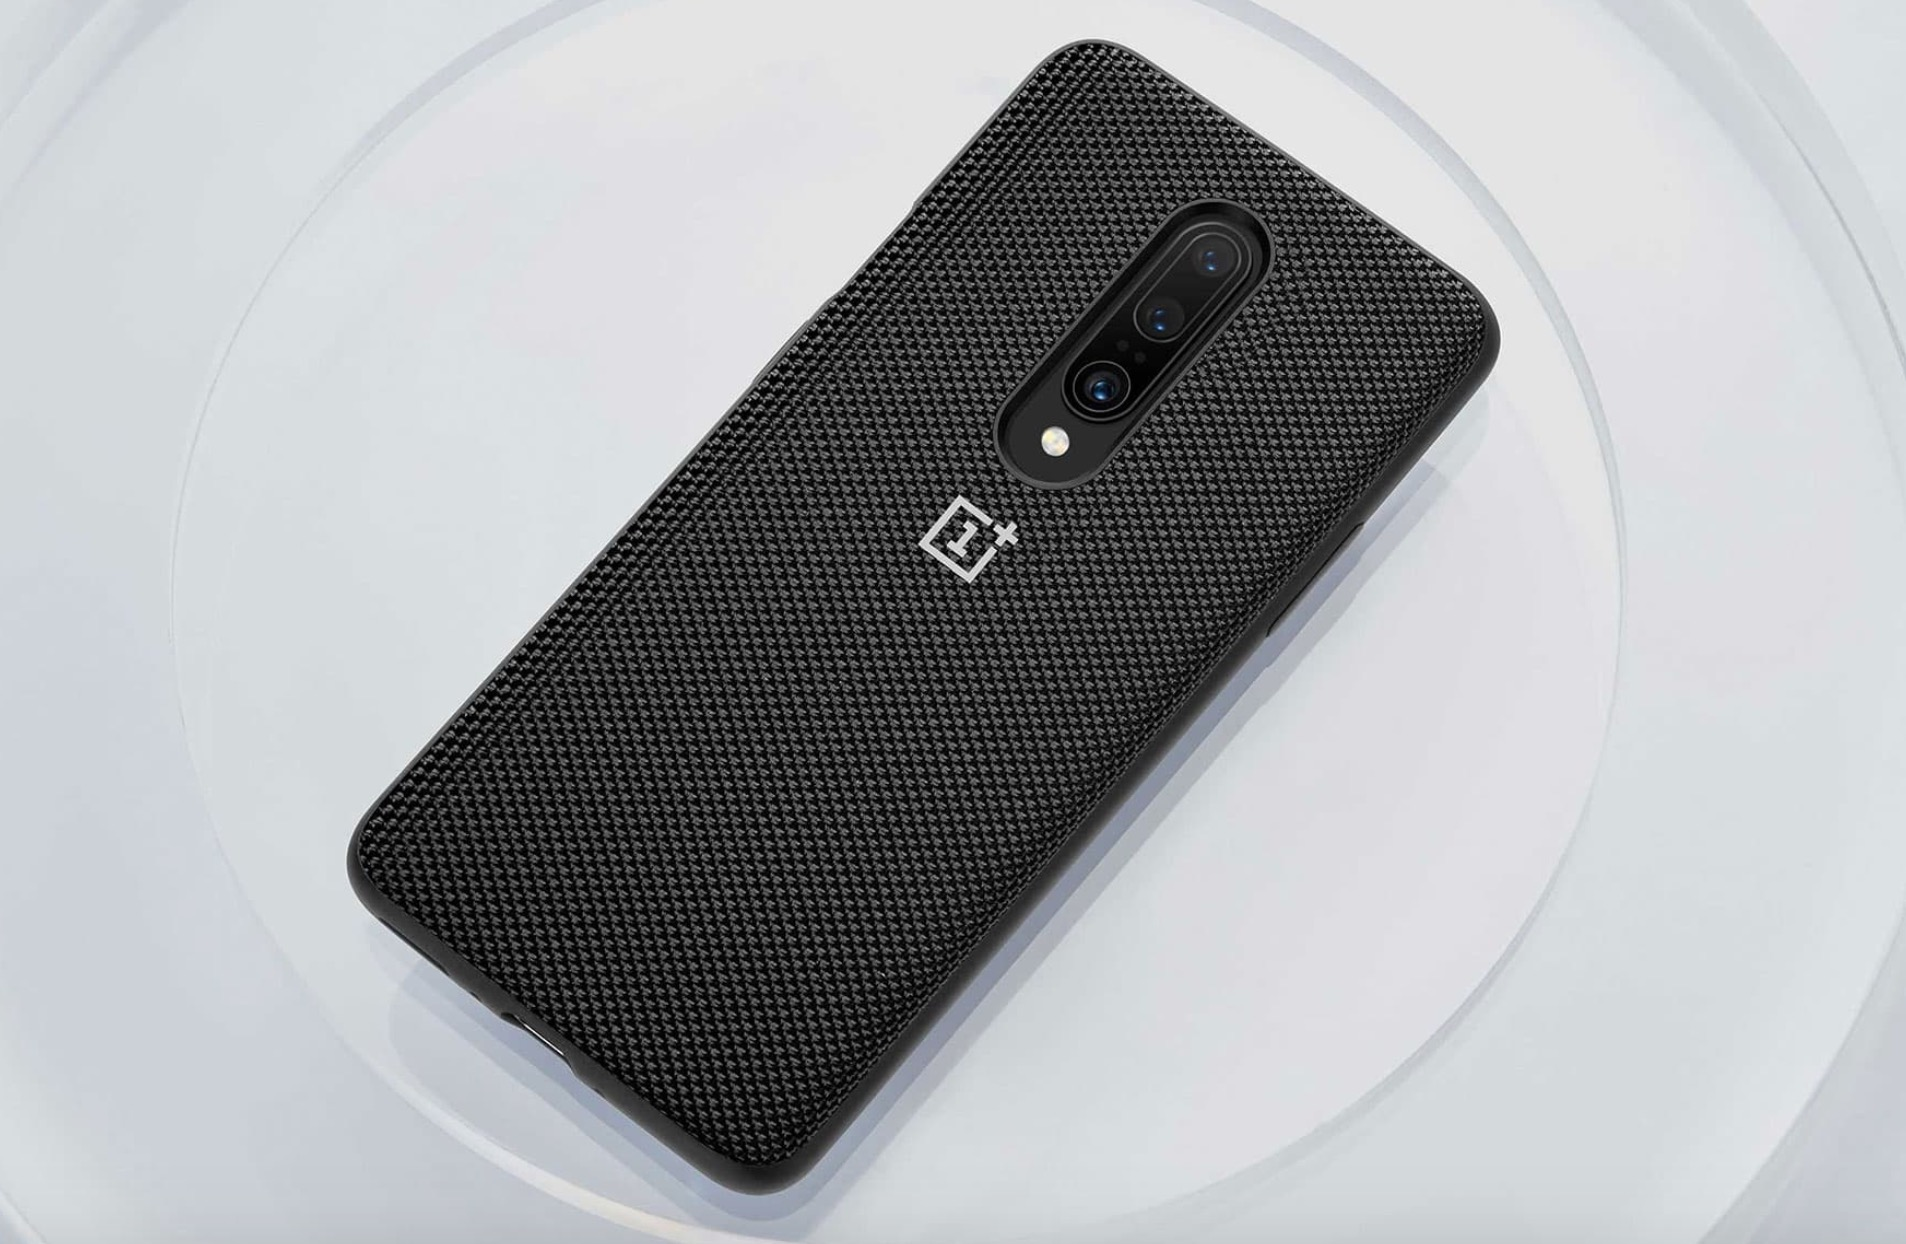 bf81a181ddc 10 Best OnePlus 7 Pro Cases